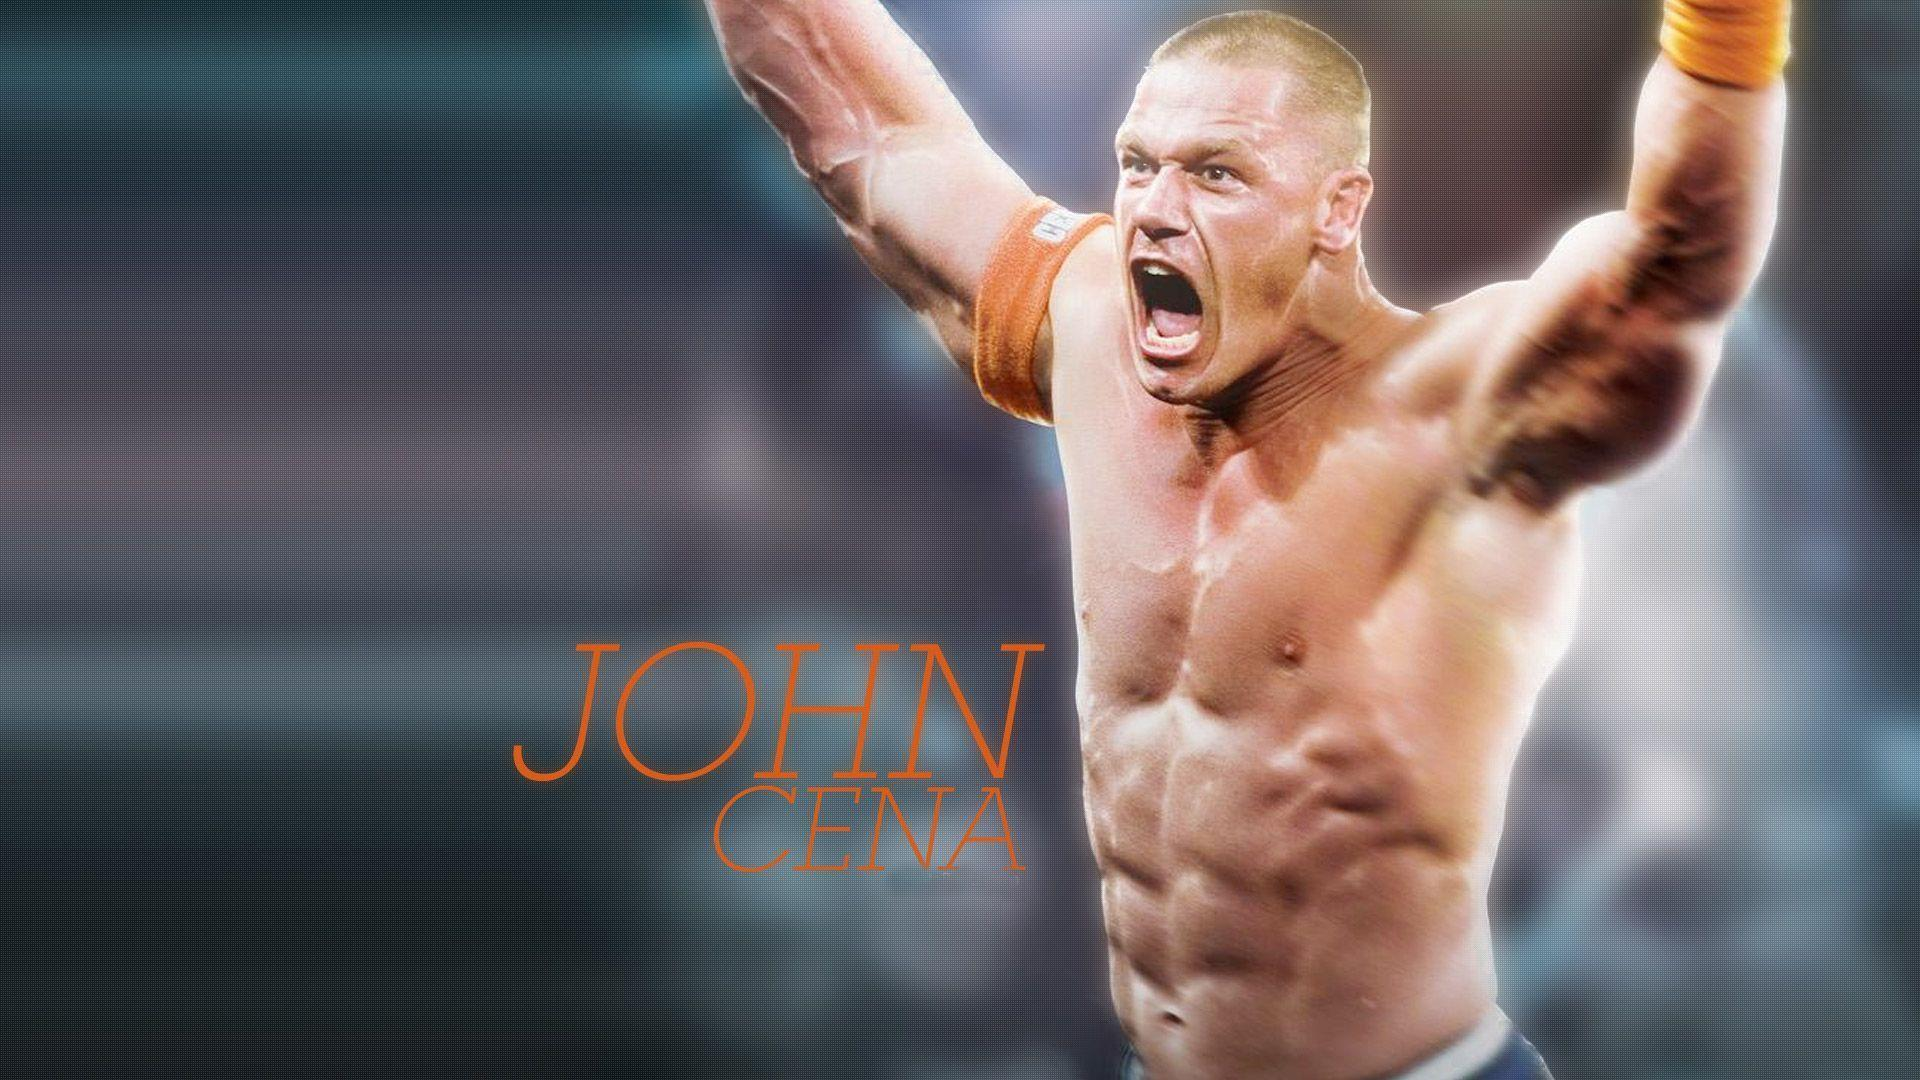 John Cena 2013 Hd Wallpapers and Backgrounds